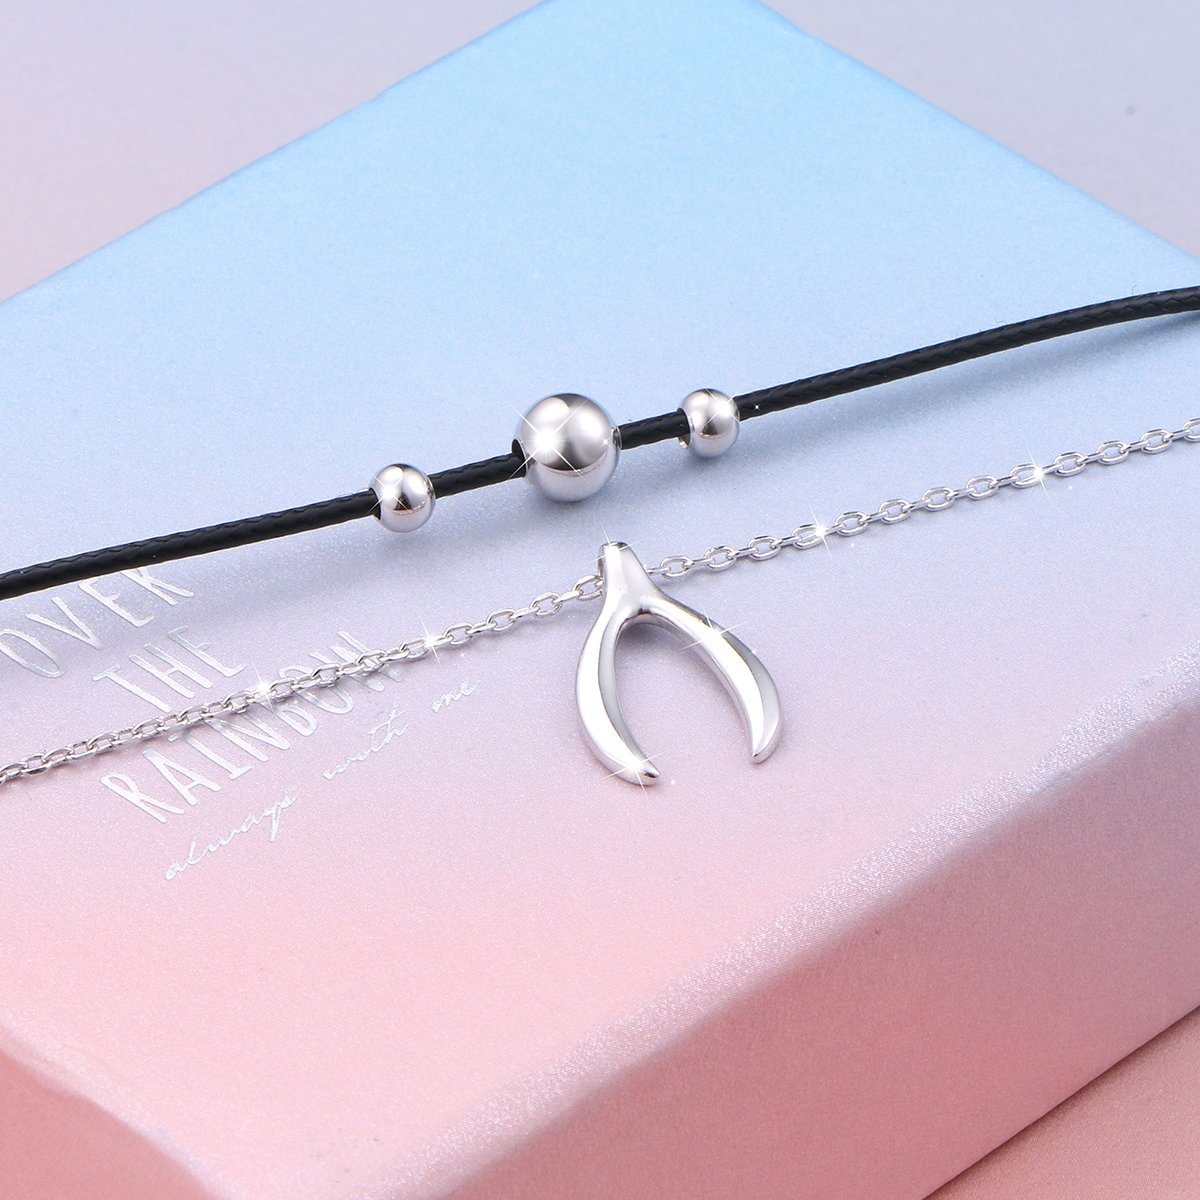 925 Sterling Silver Good Luck Wishbone Bead Charm Choker Necklace Gift for Women by LINLIN FINE JEWELRY (Image #5)